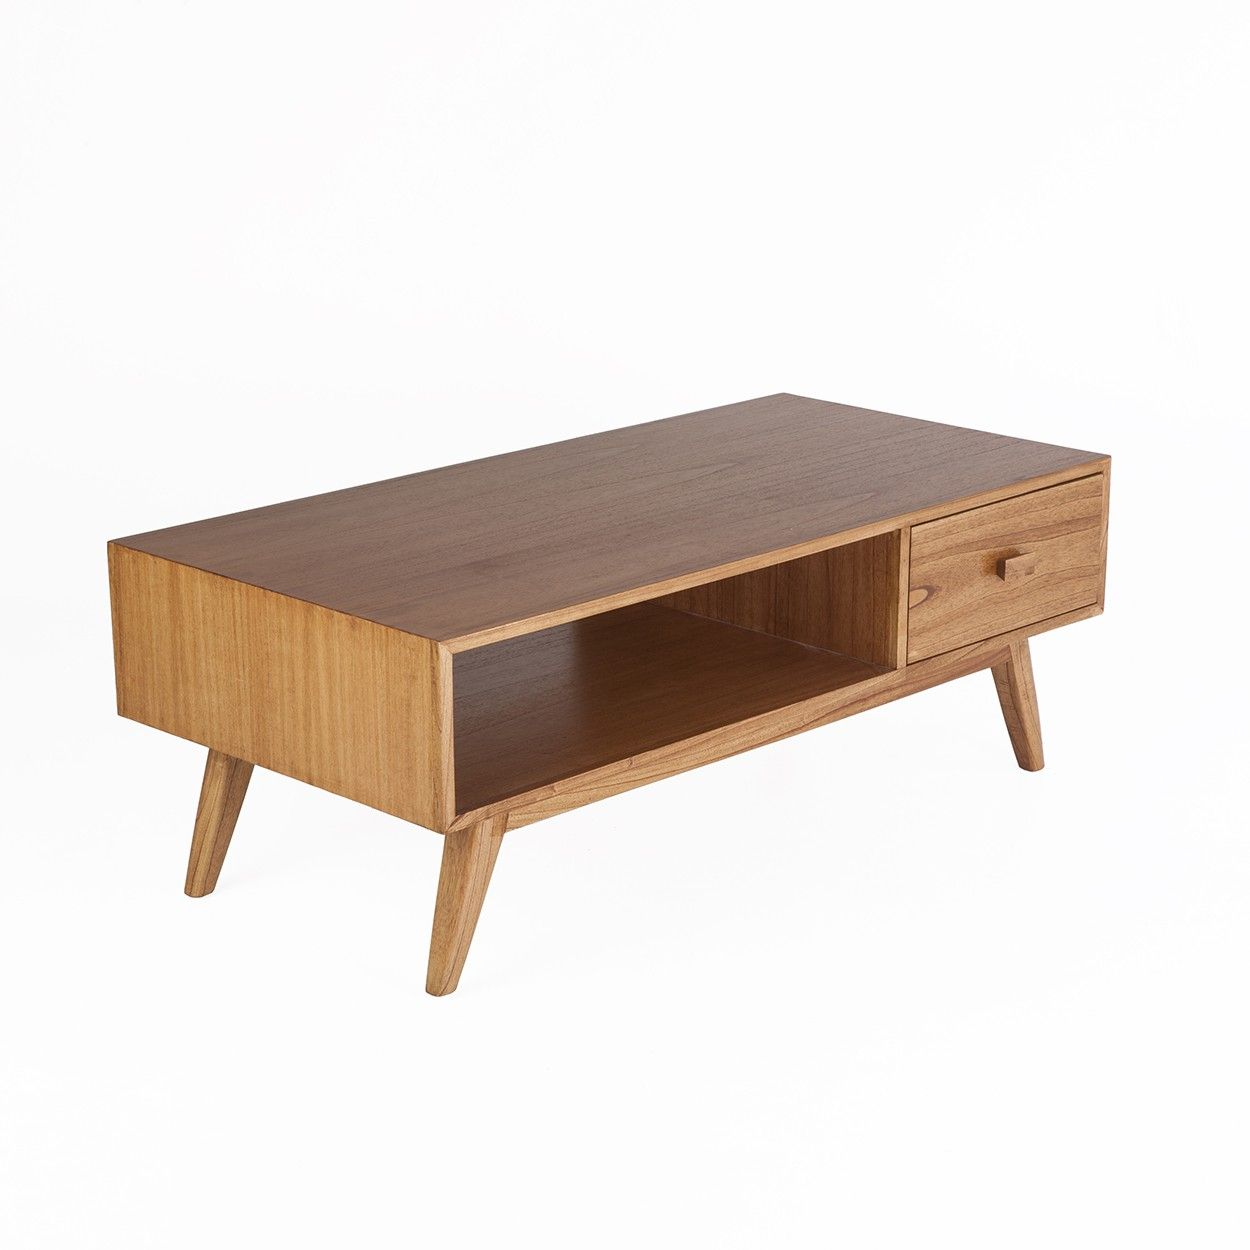 Krugman coffee table with storage coffee table with storage